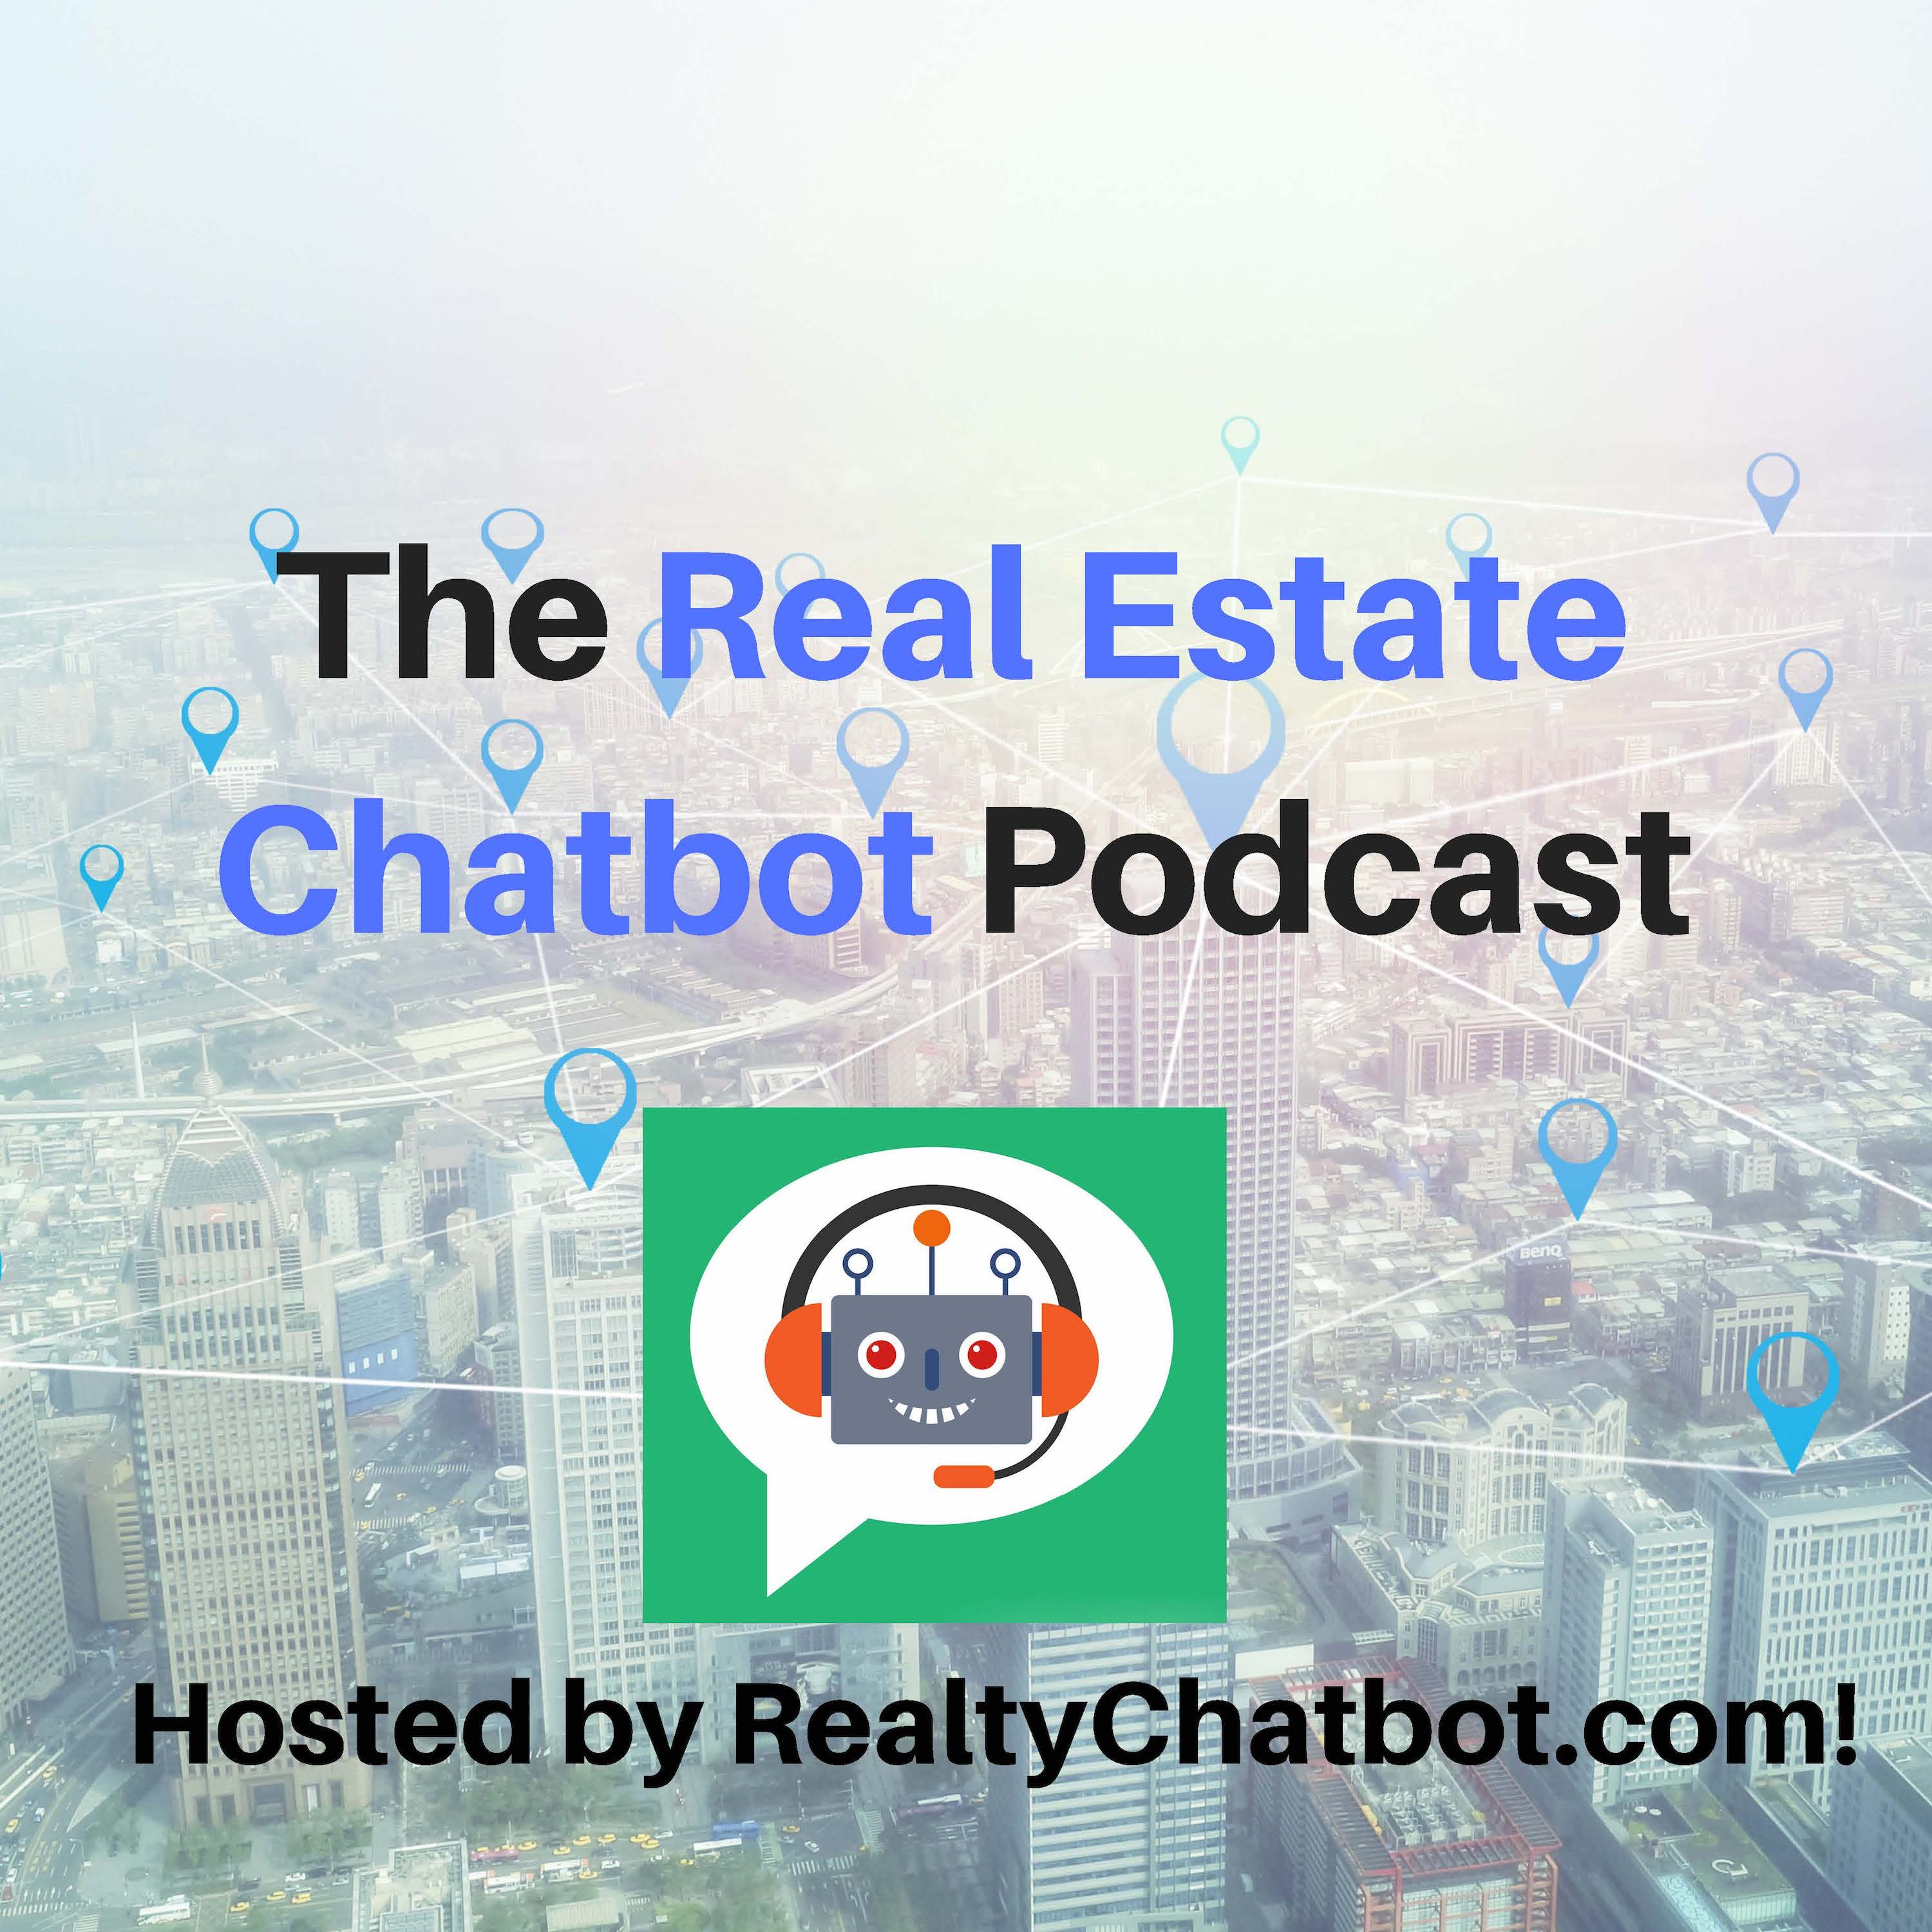 The Real Estate Chatbot Podcast